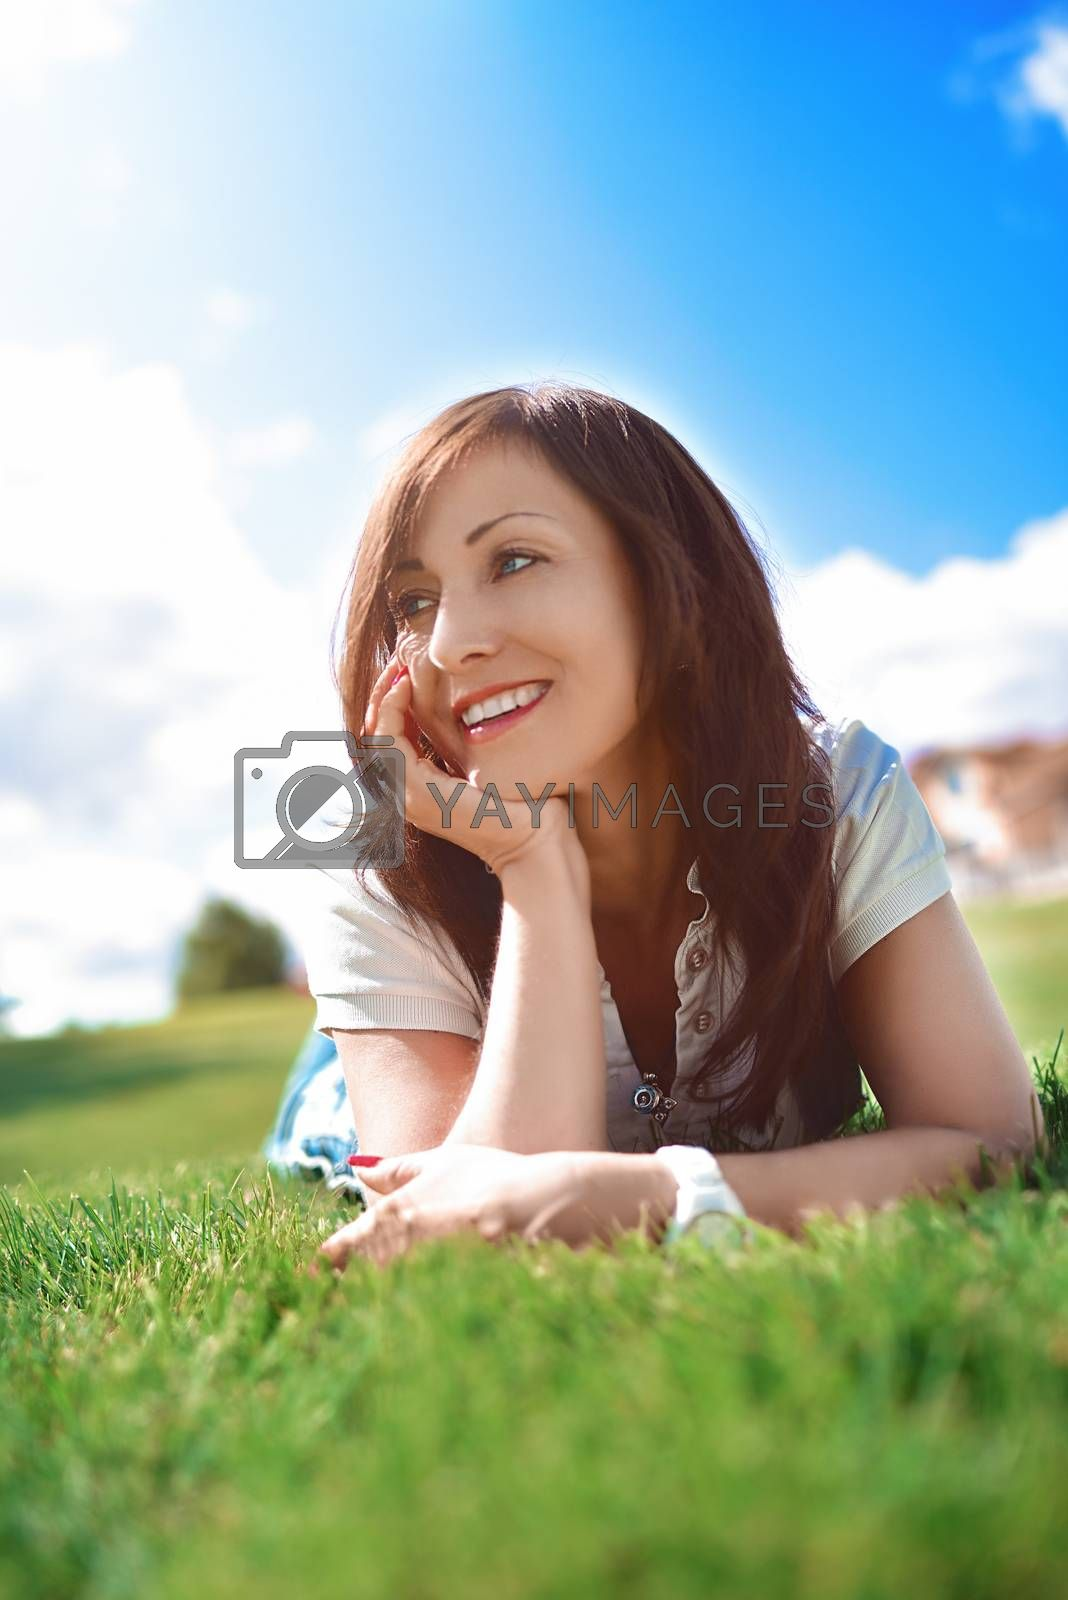 Positive emotion, adult woman relaxed lying on green grass in an outdoor park. girl in sunglasses enjoying nature lying on grass by Nickstock